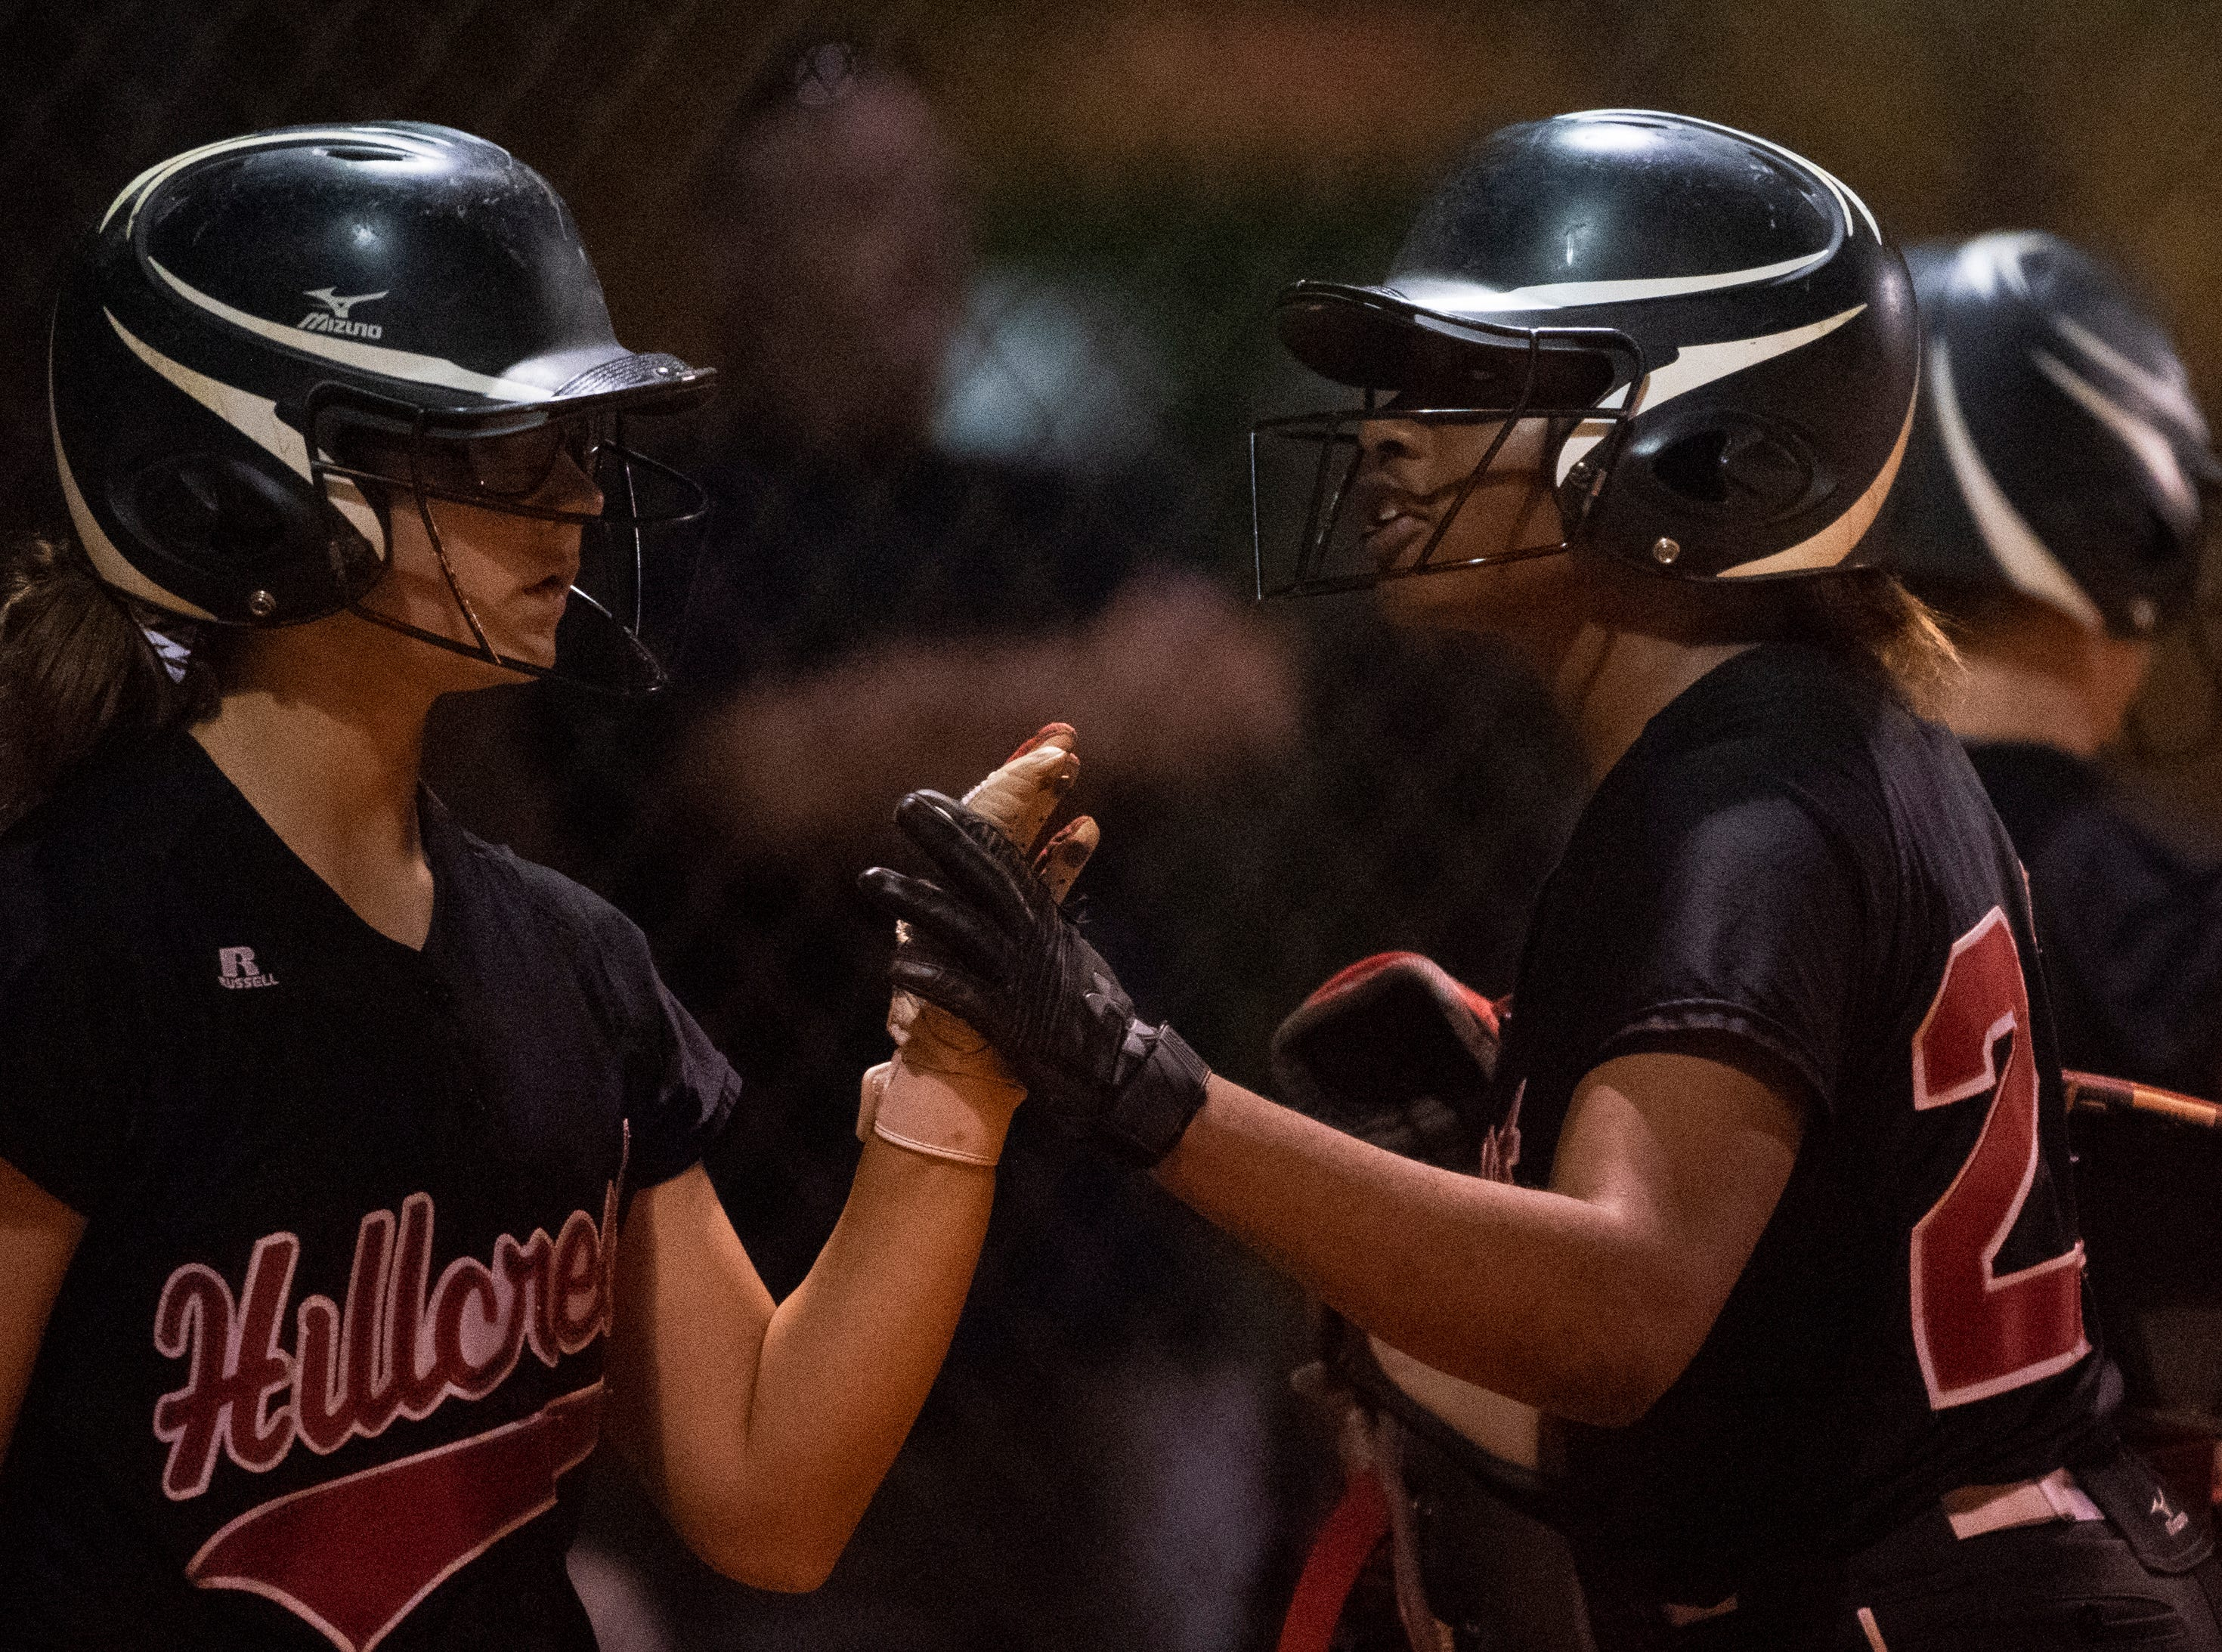 Hillcrest's Alexis Hargrove (24) (right) and Hannah Stevens (99) slap hands at home plate after Hargrove scored a run during the game against Boiling Springs High School at Hillcrest Friday, April 12, 2019.